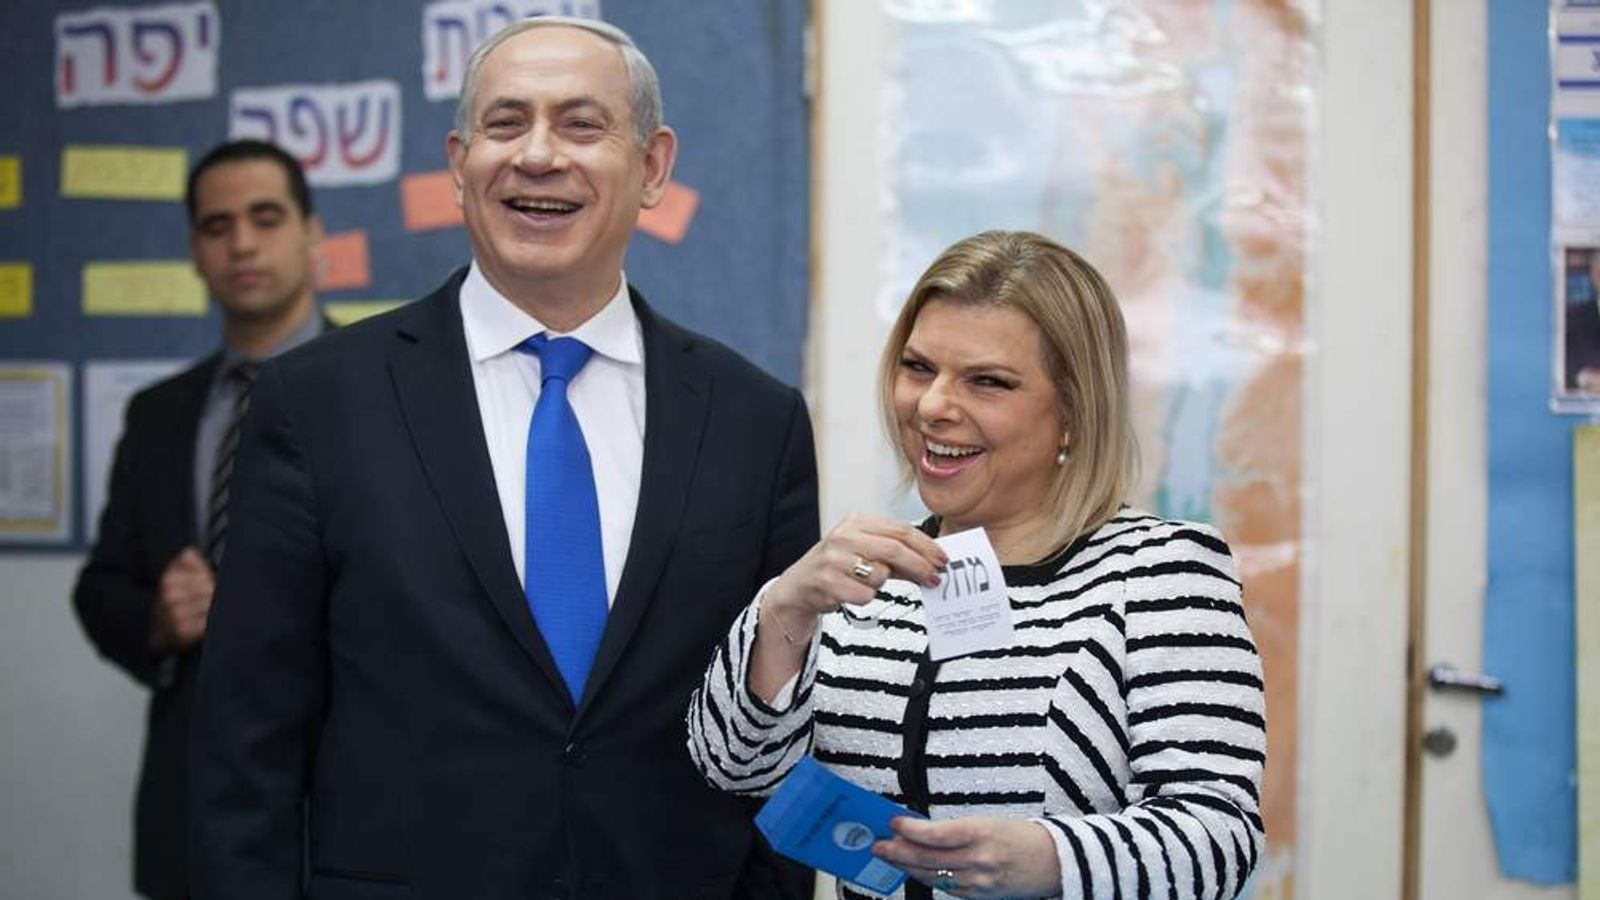 Netanyahu Casts His Vote In Israel's General Election